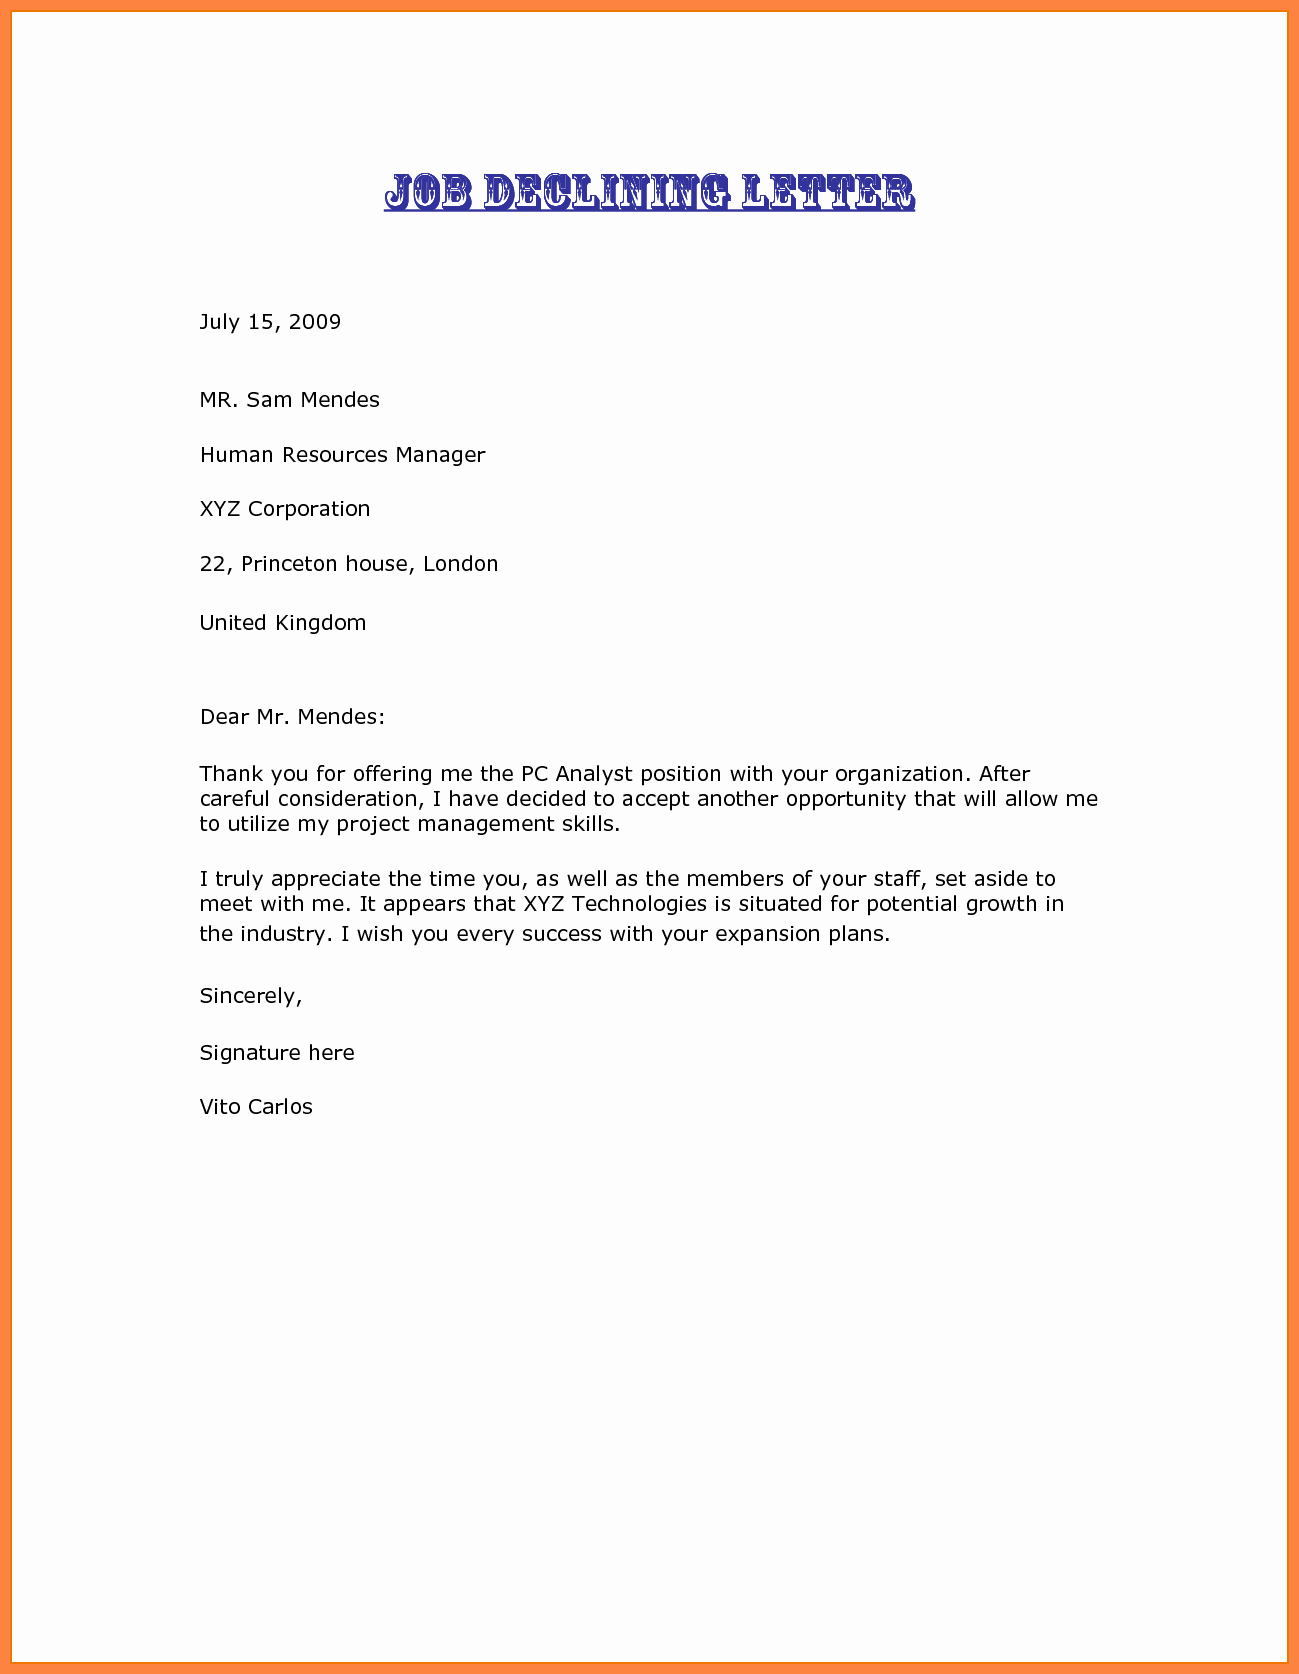 Decline to Bid Letter Fresh 3 Decline A Job Offer